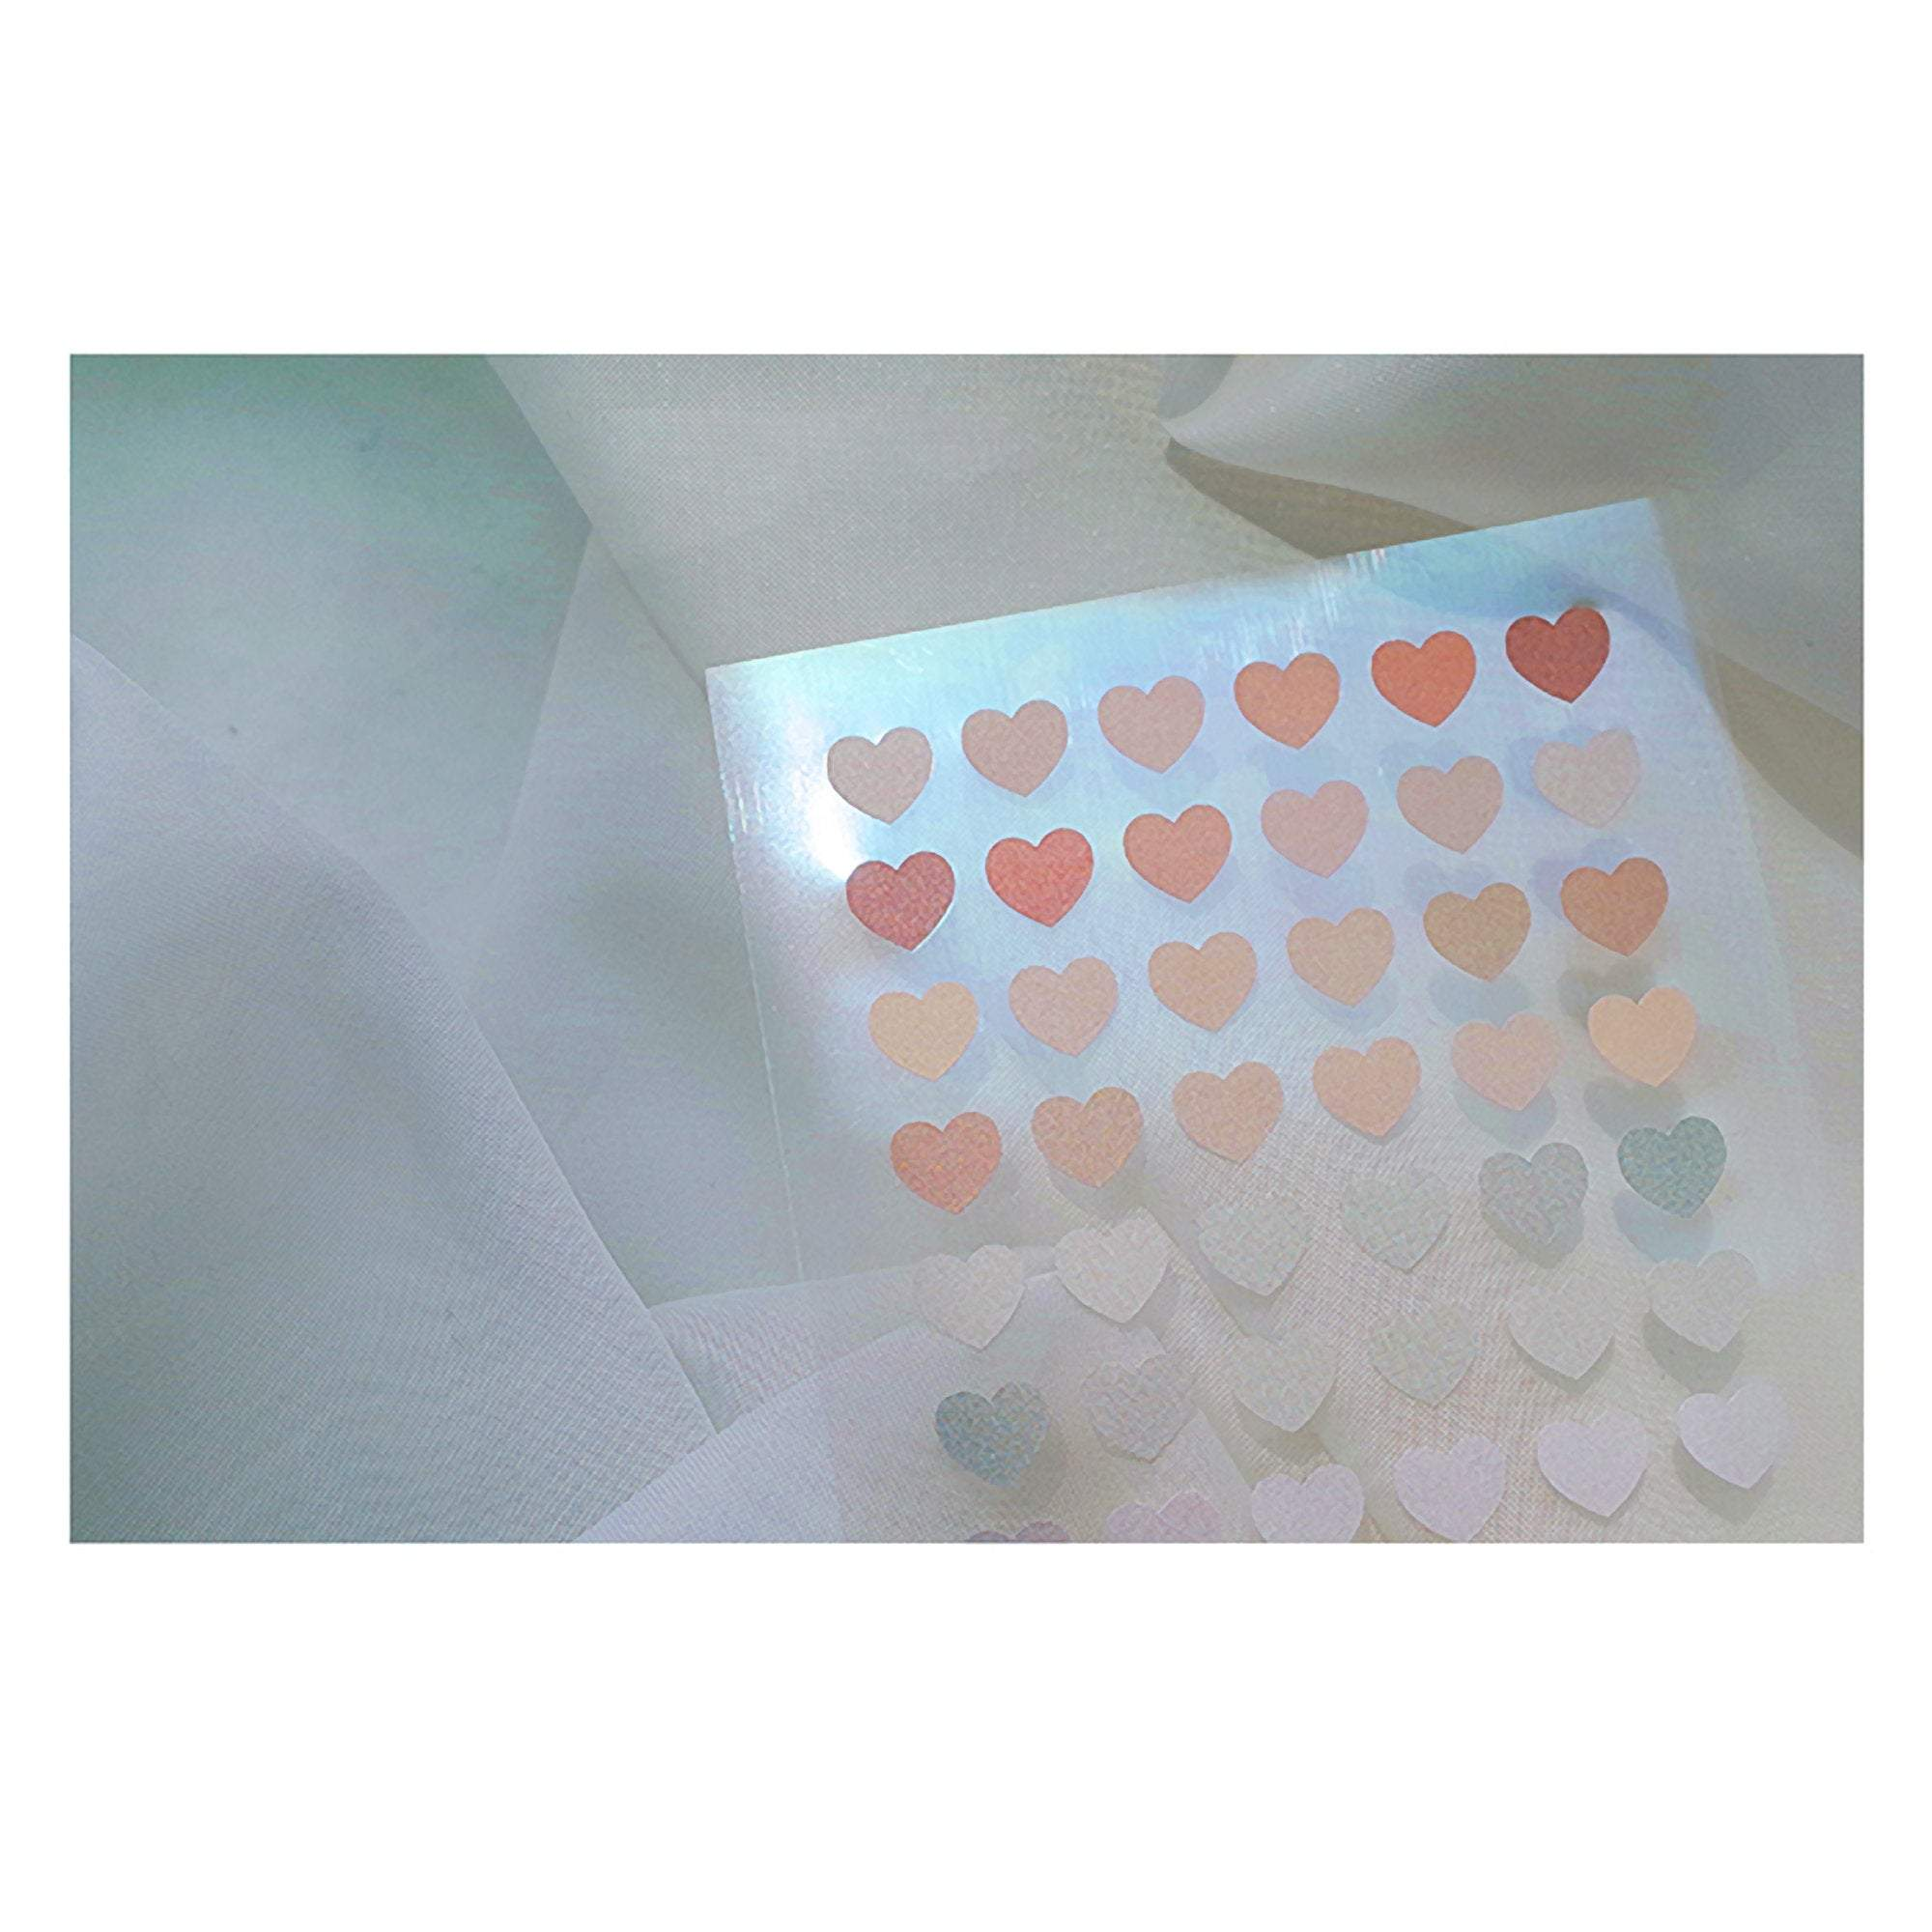 Suatelier Translucent Planner Stickers 1655 | Plain Shapes 51 Heart Translucent Stickers - The Stationery Life!